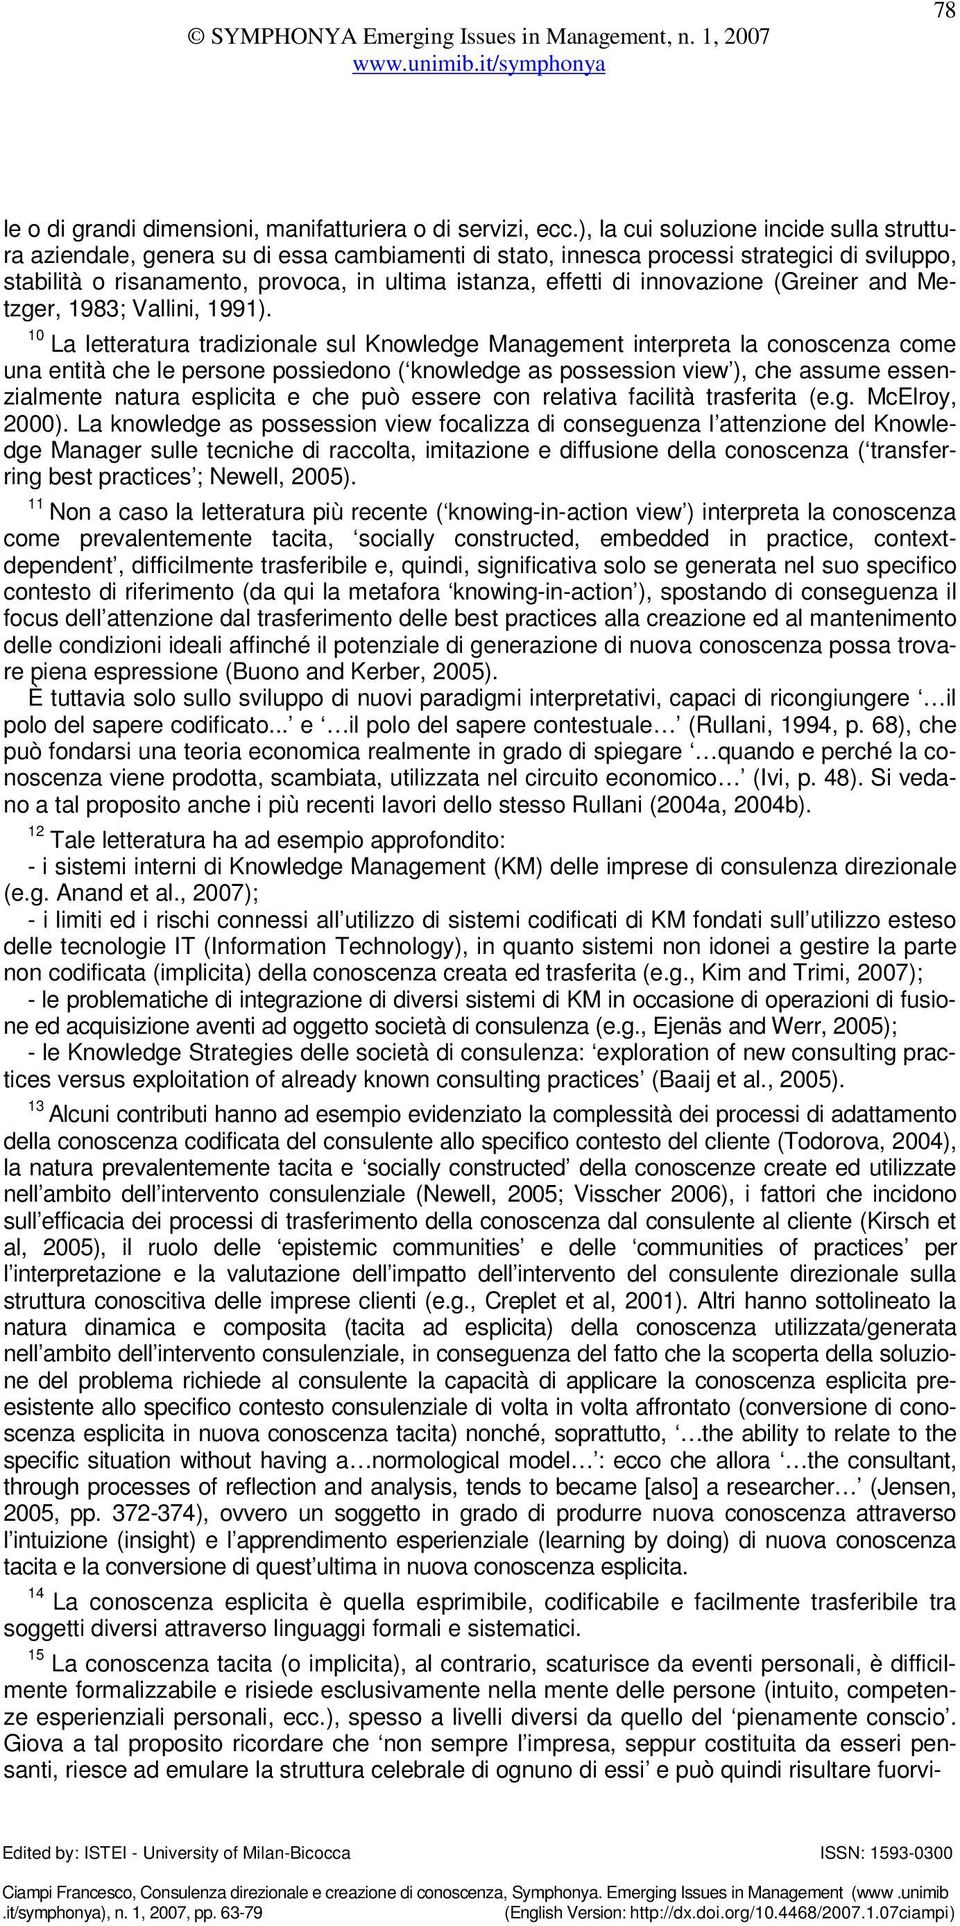 innovazione (Greiner and Metzger, 1983; Vallini, 1991).